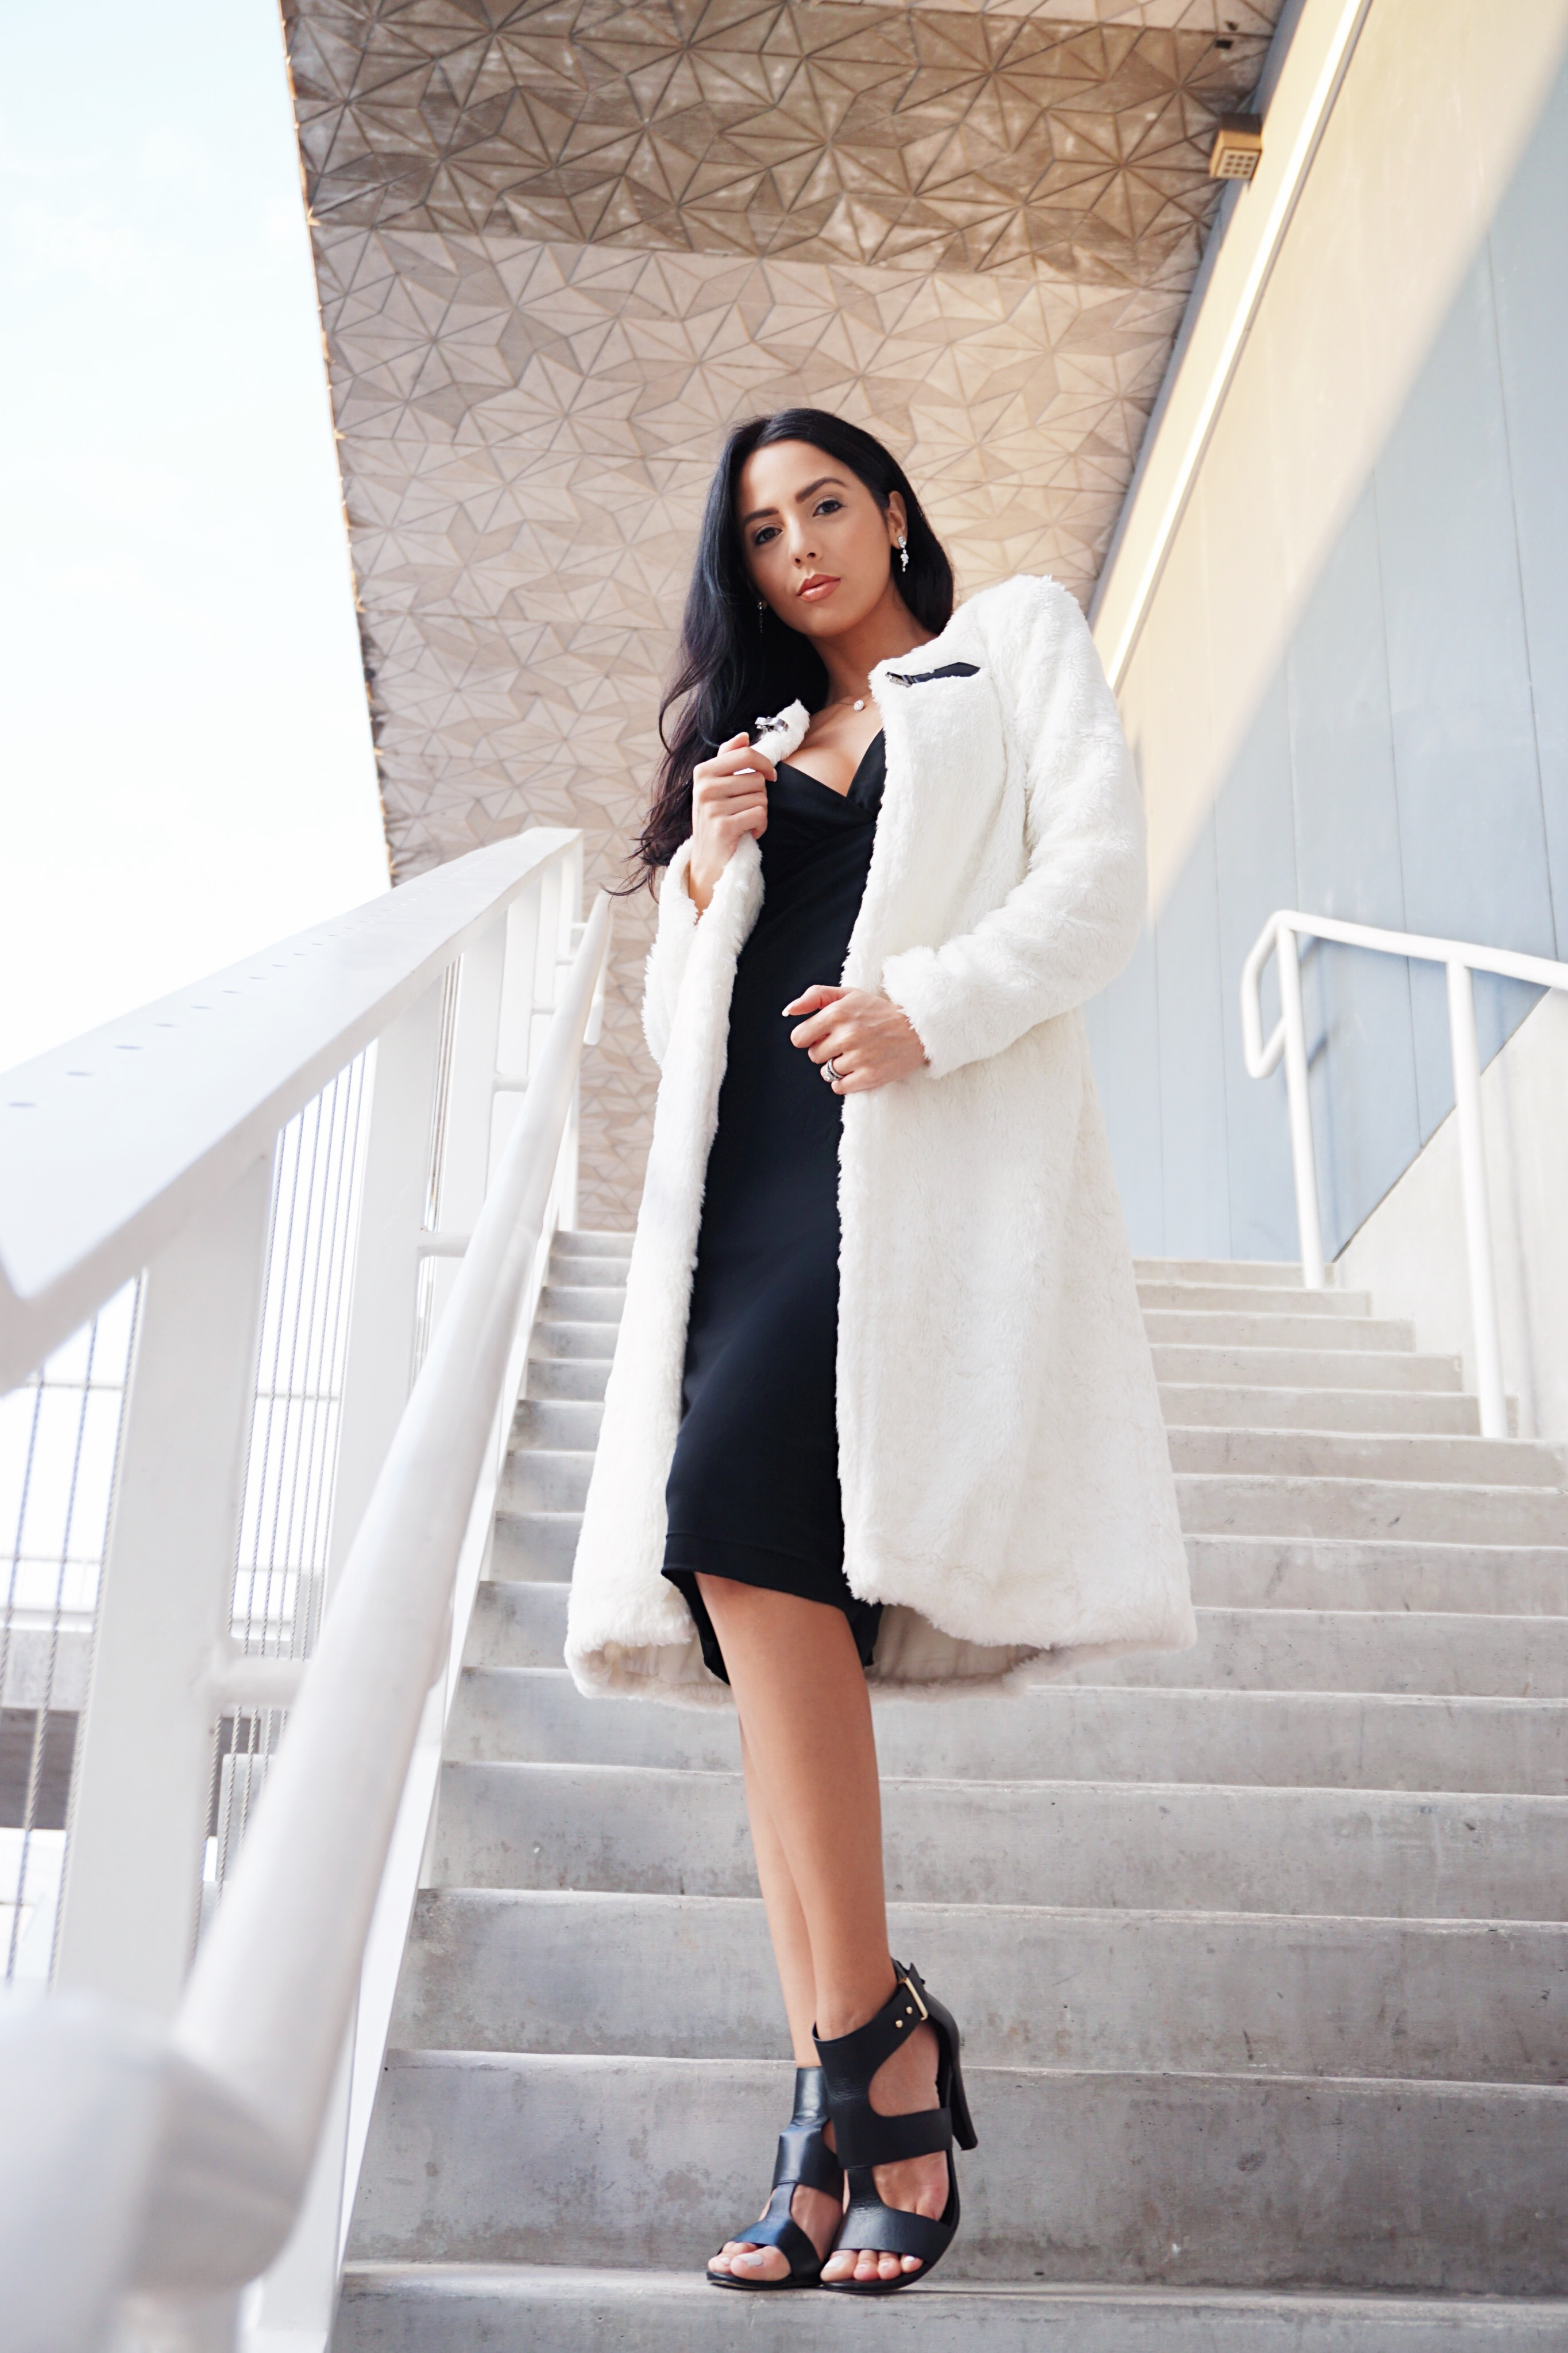 5 Style Tips to Mix and Match | HauteSpark.com